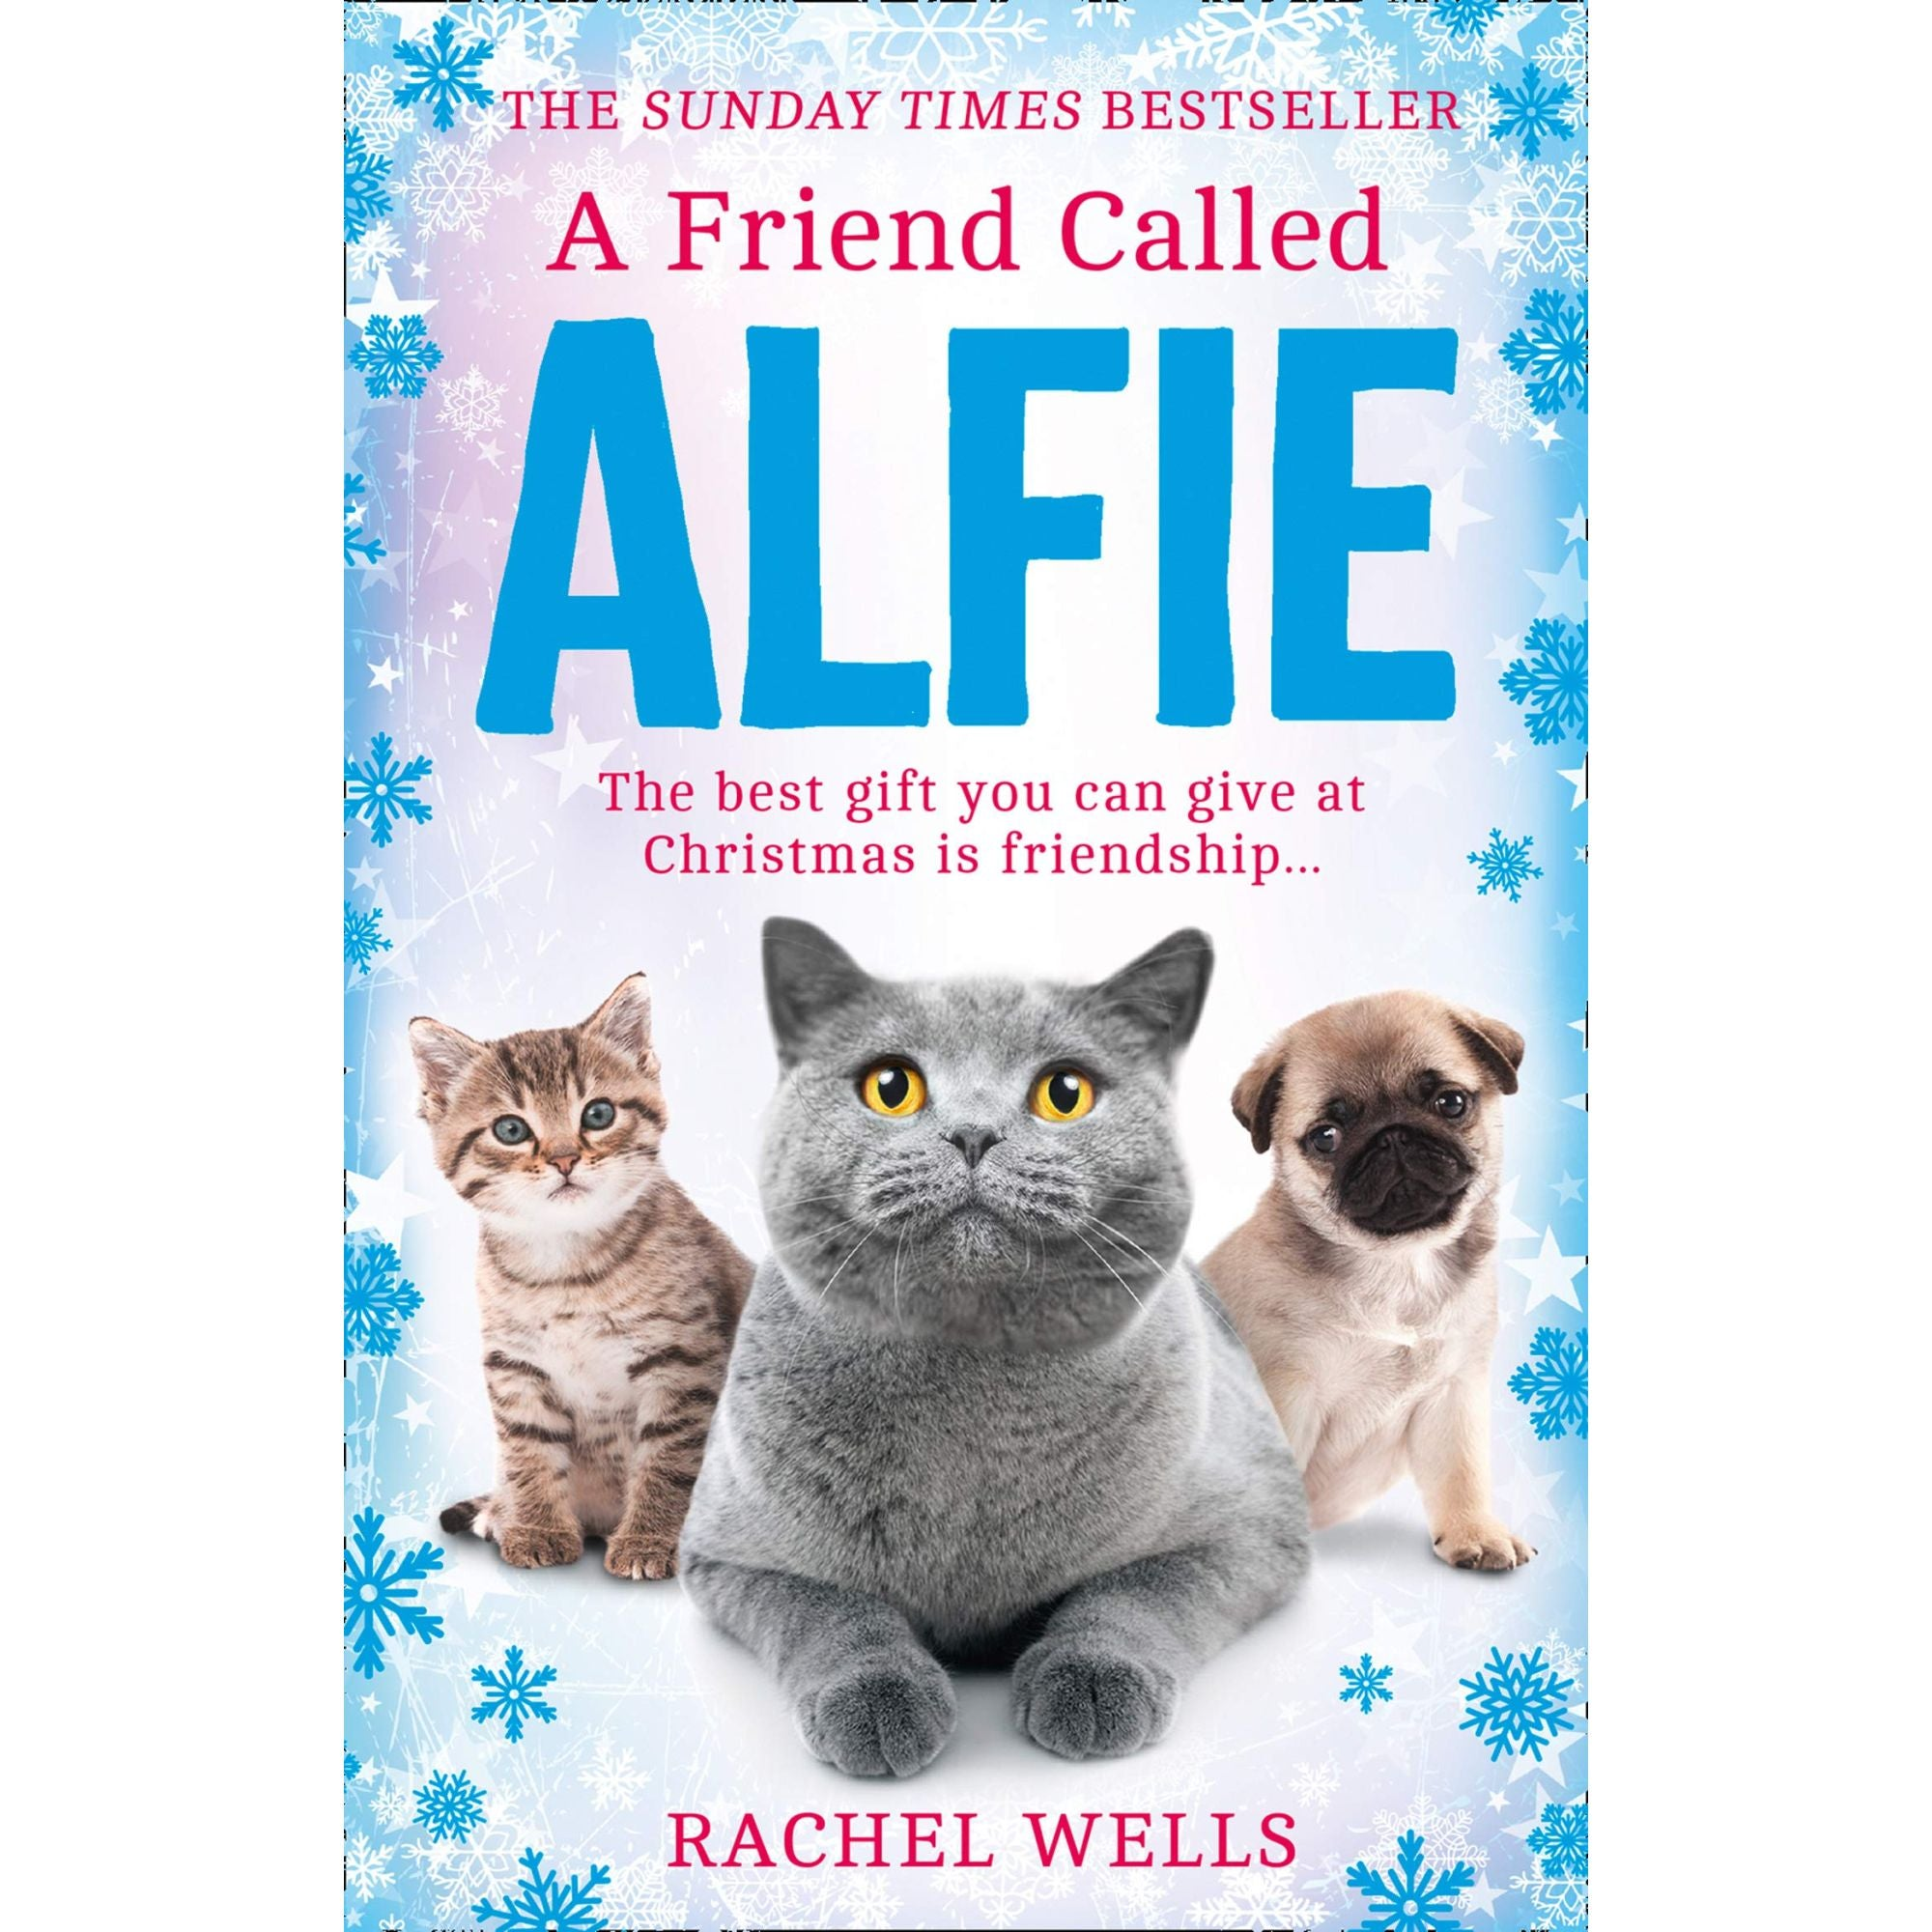 A Friend called Alfie